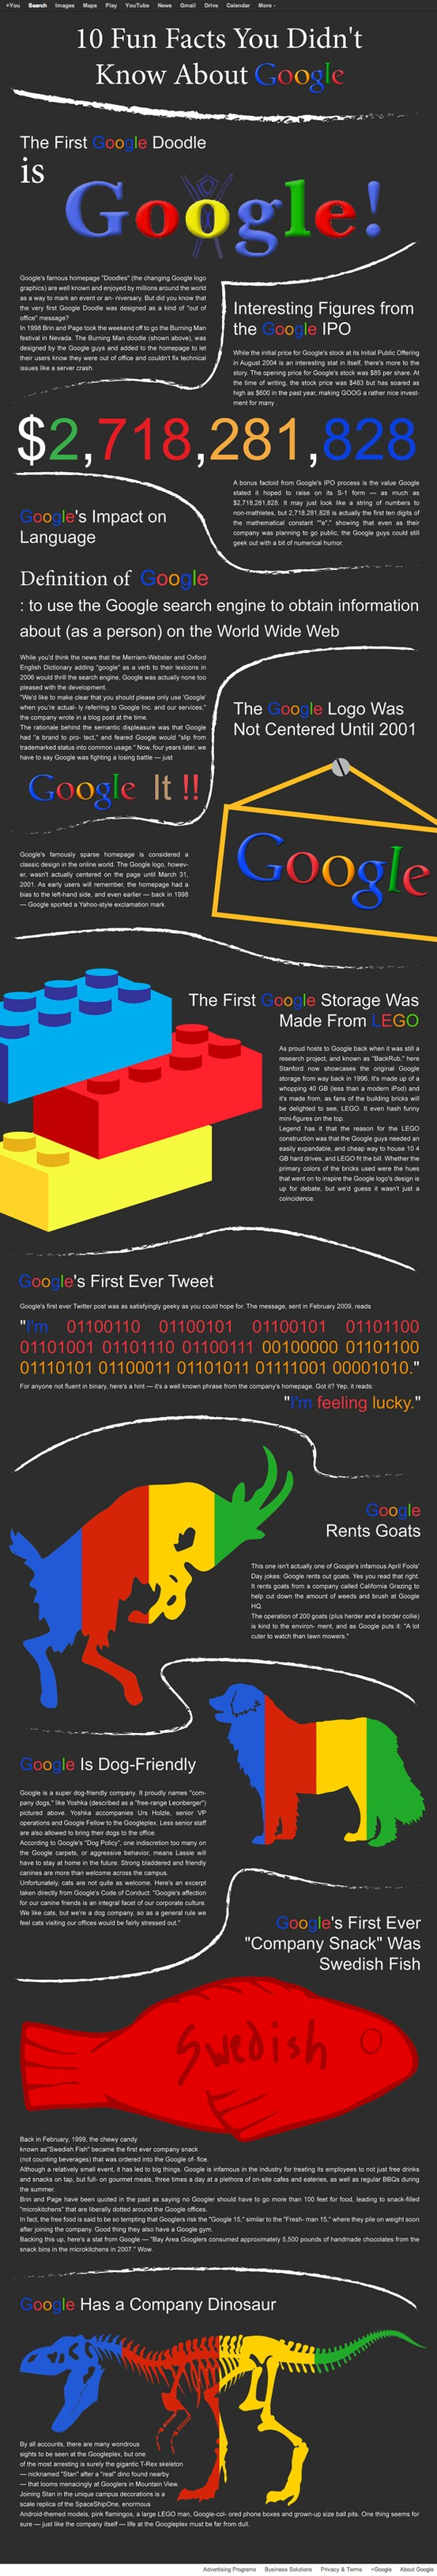 Fun Facts You Didnt Know About Google Infografia Infographic - 10 useful things didnt know google